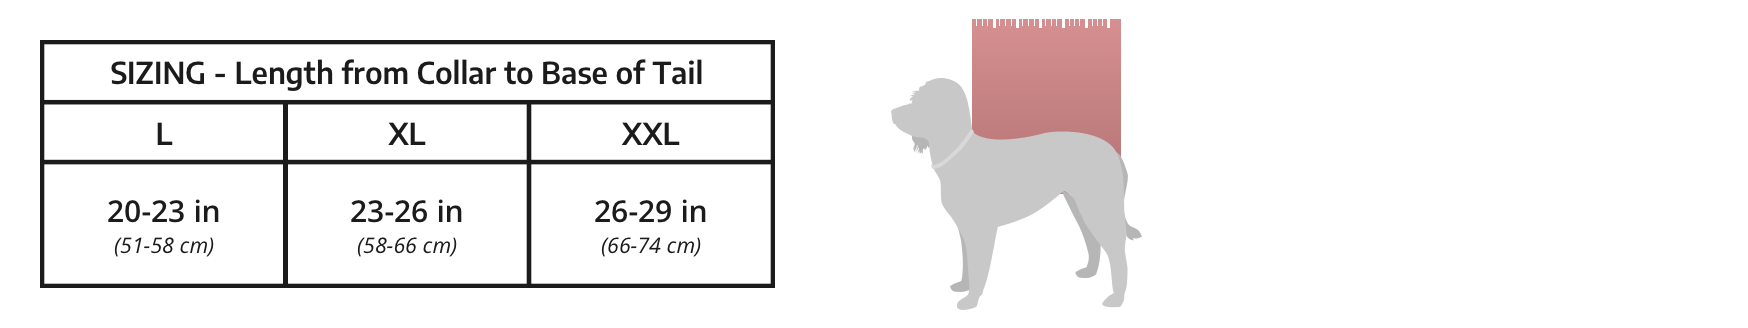 Sizing chart, measuring the length of your dog from its collar to the base of its tail. Large 20-23 inches. Extra Large, 23-26 inches.